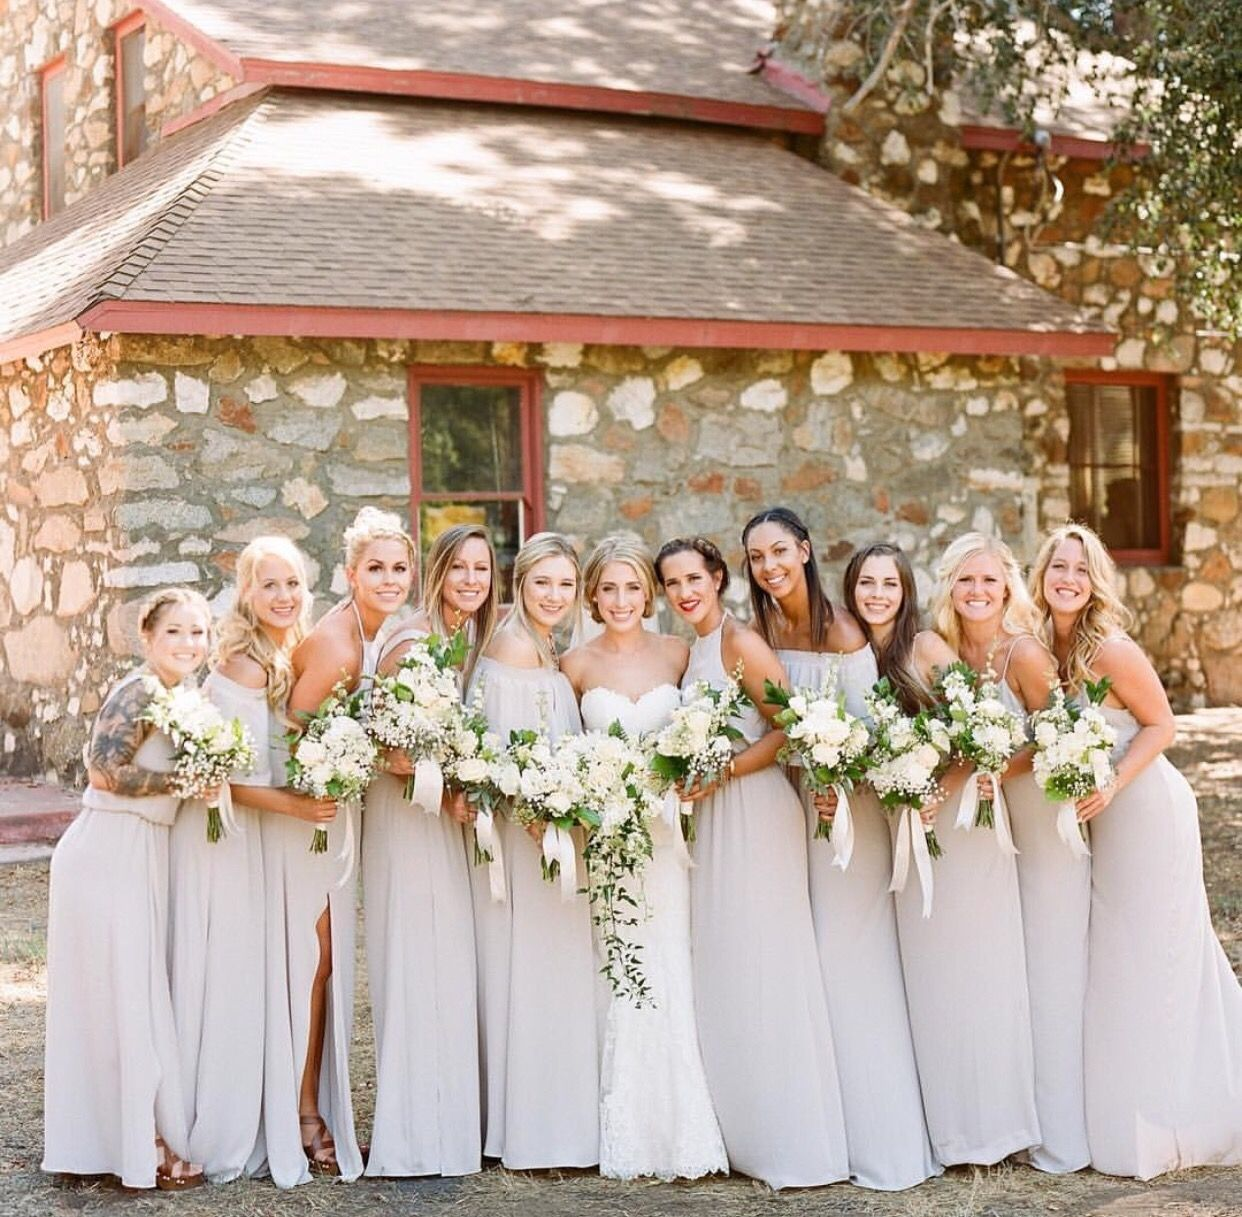 Beautiful bride and her bridesmaids all dressed in show me the beautiful bride and her bridesmaids all dressed in show me the ring crisp bridesmaid dresses ombrellifo Image collections